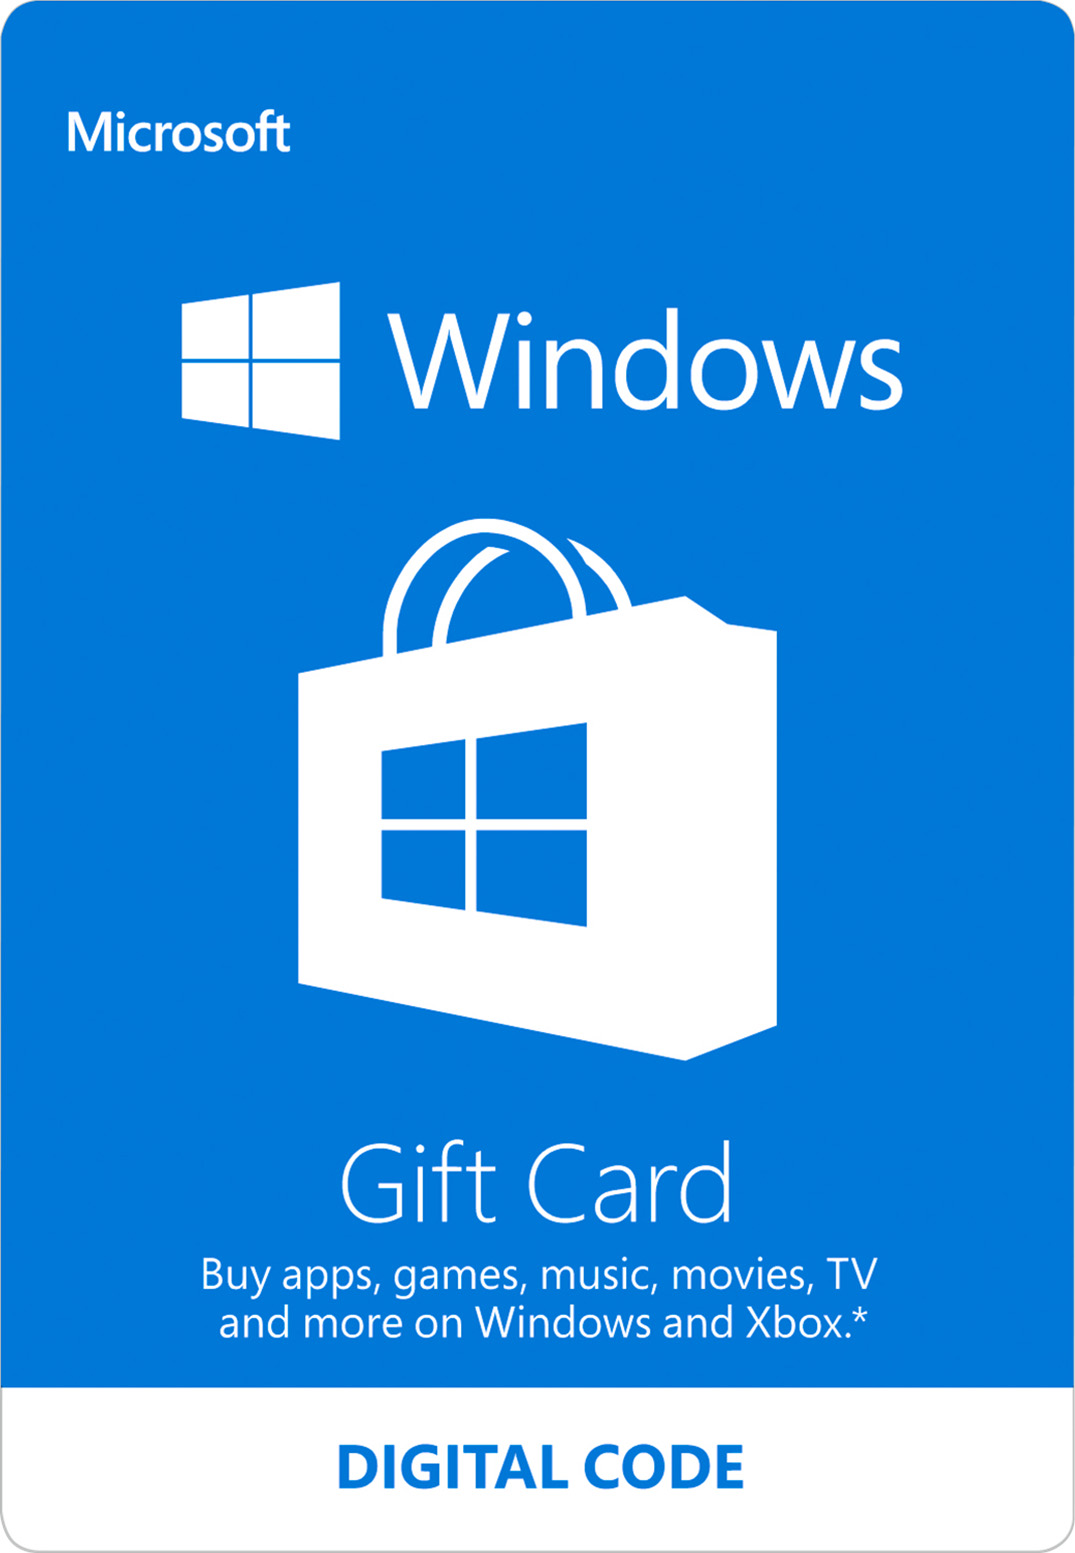 Windows Store Digital Gift Card: $100.00